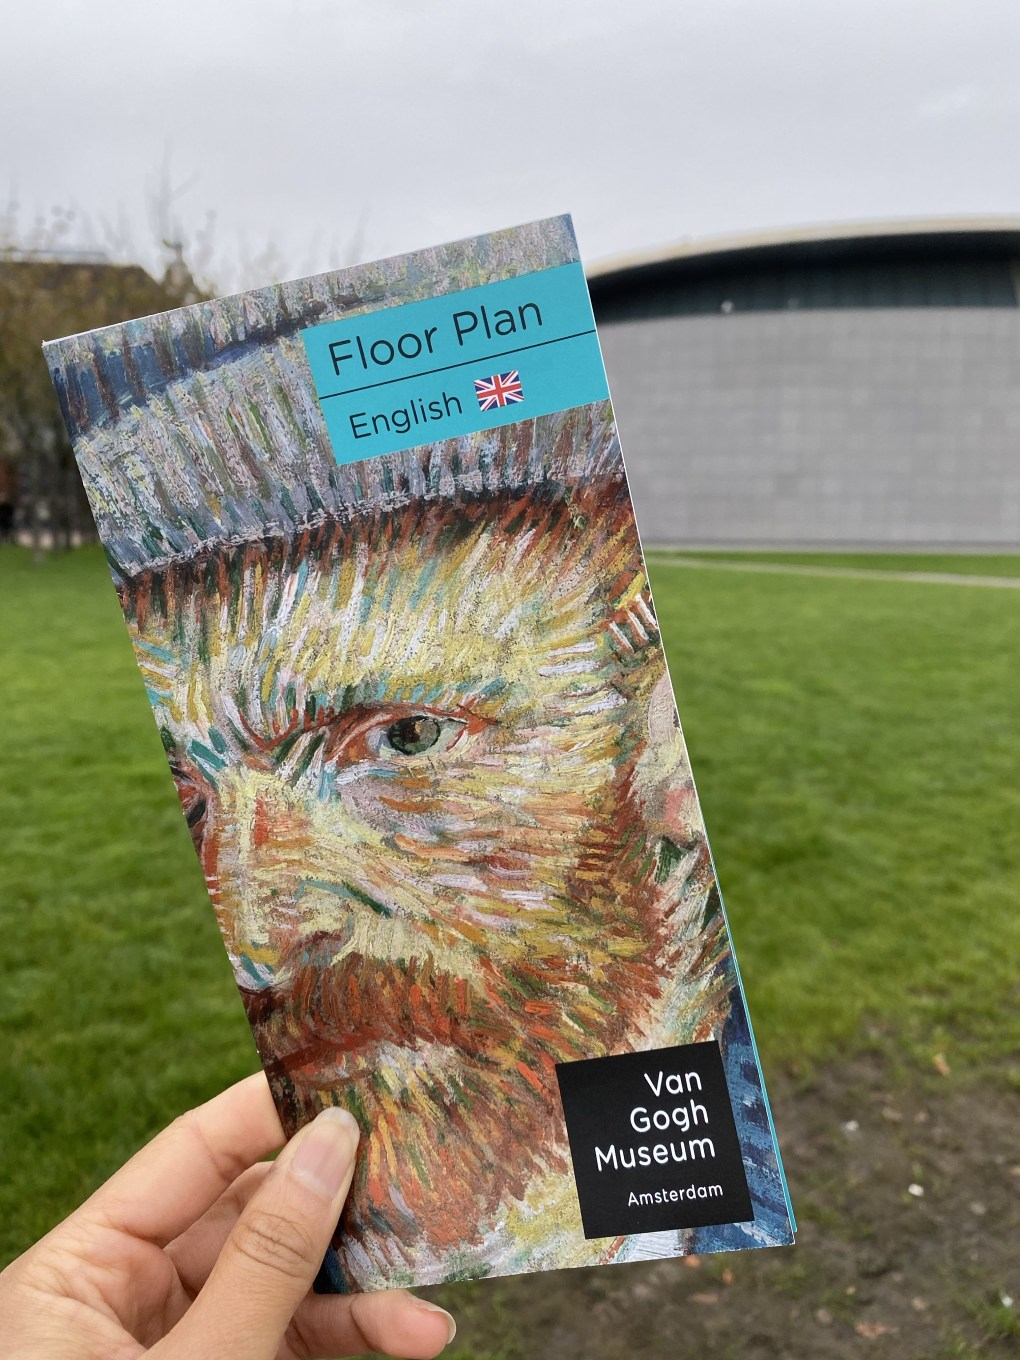 Van Gogh Museum pamphlet with museum building in background